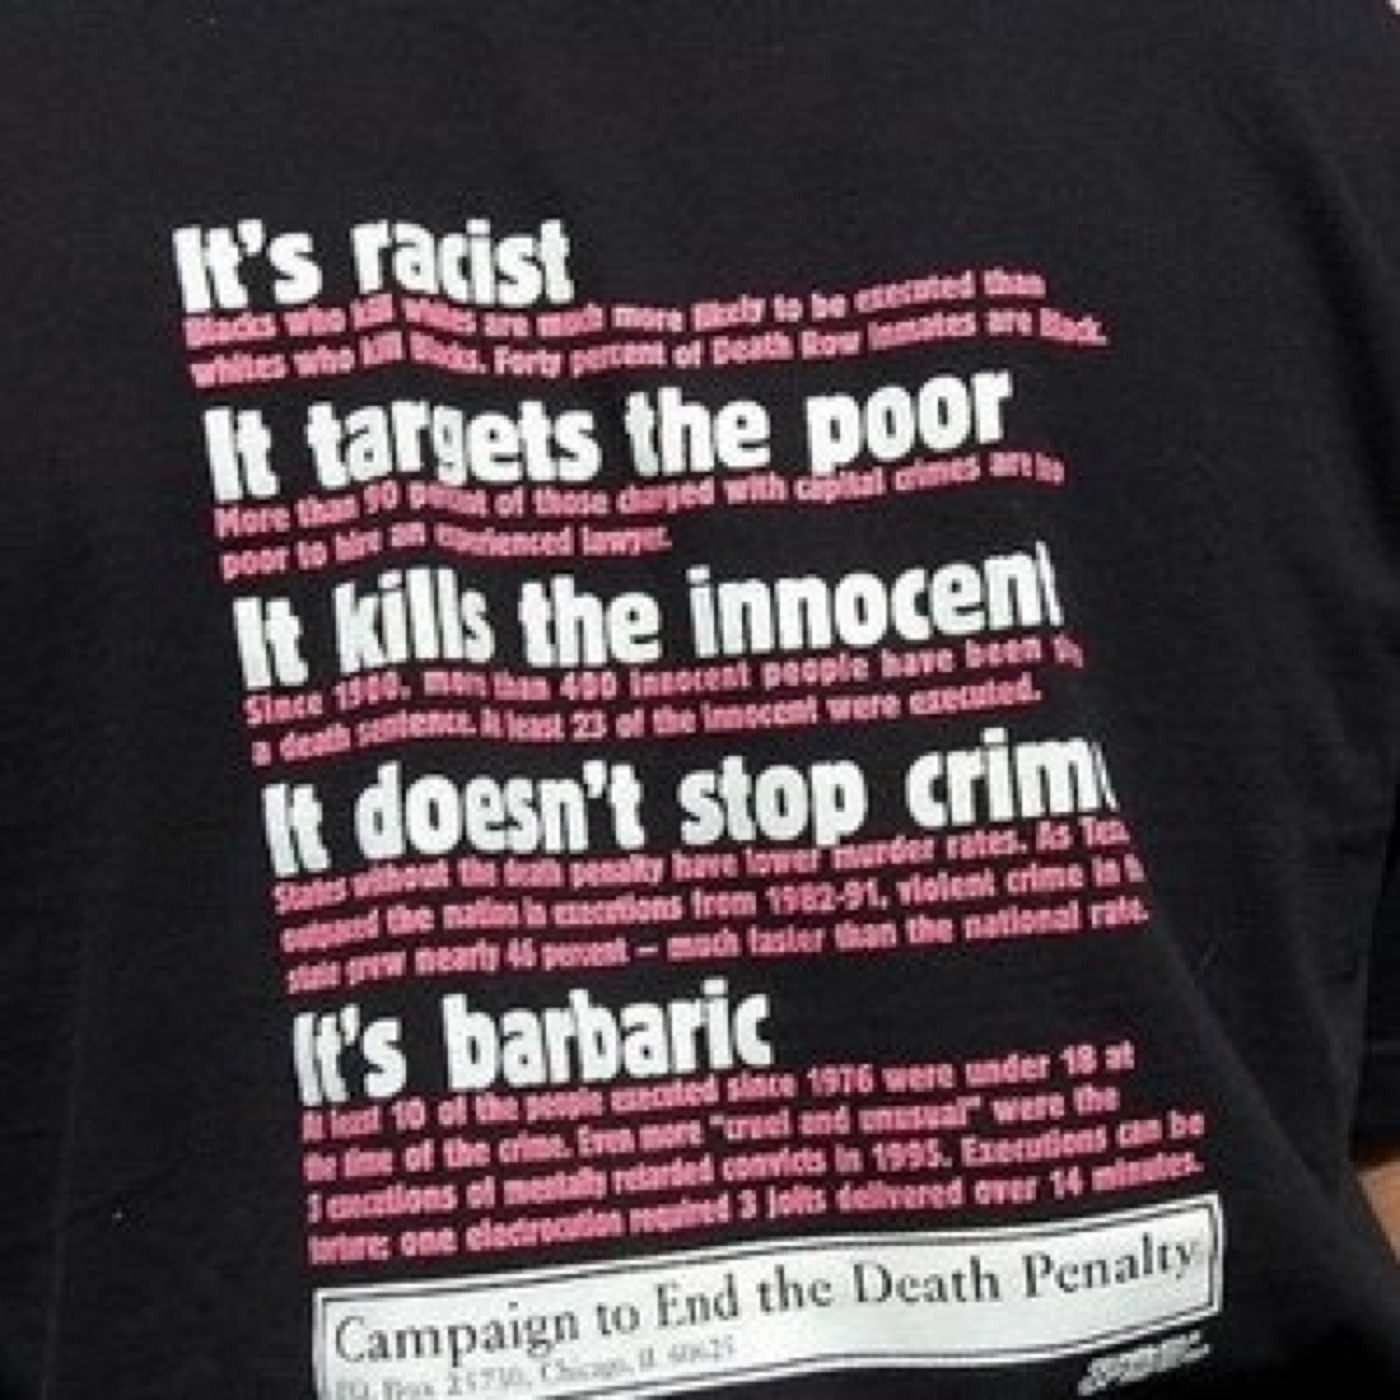 687399a92d5b (2014/05/19) Bad in principle and in practice (Death Penalty